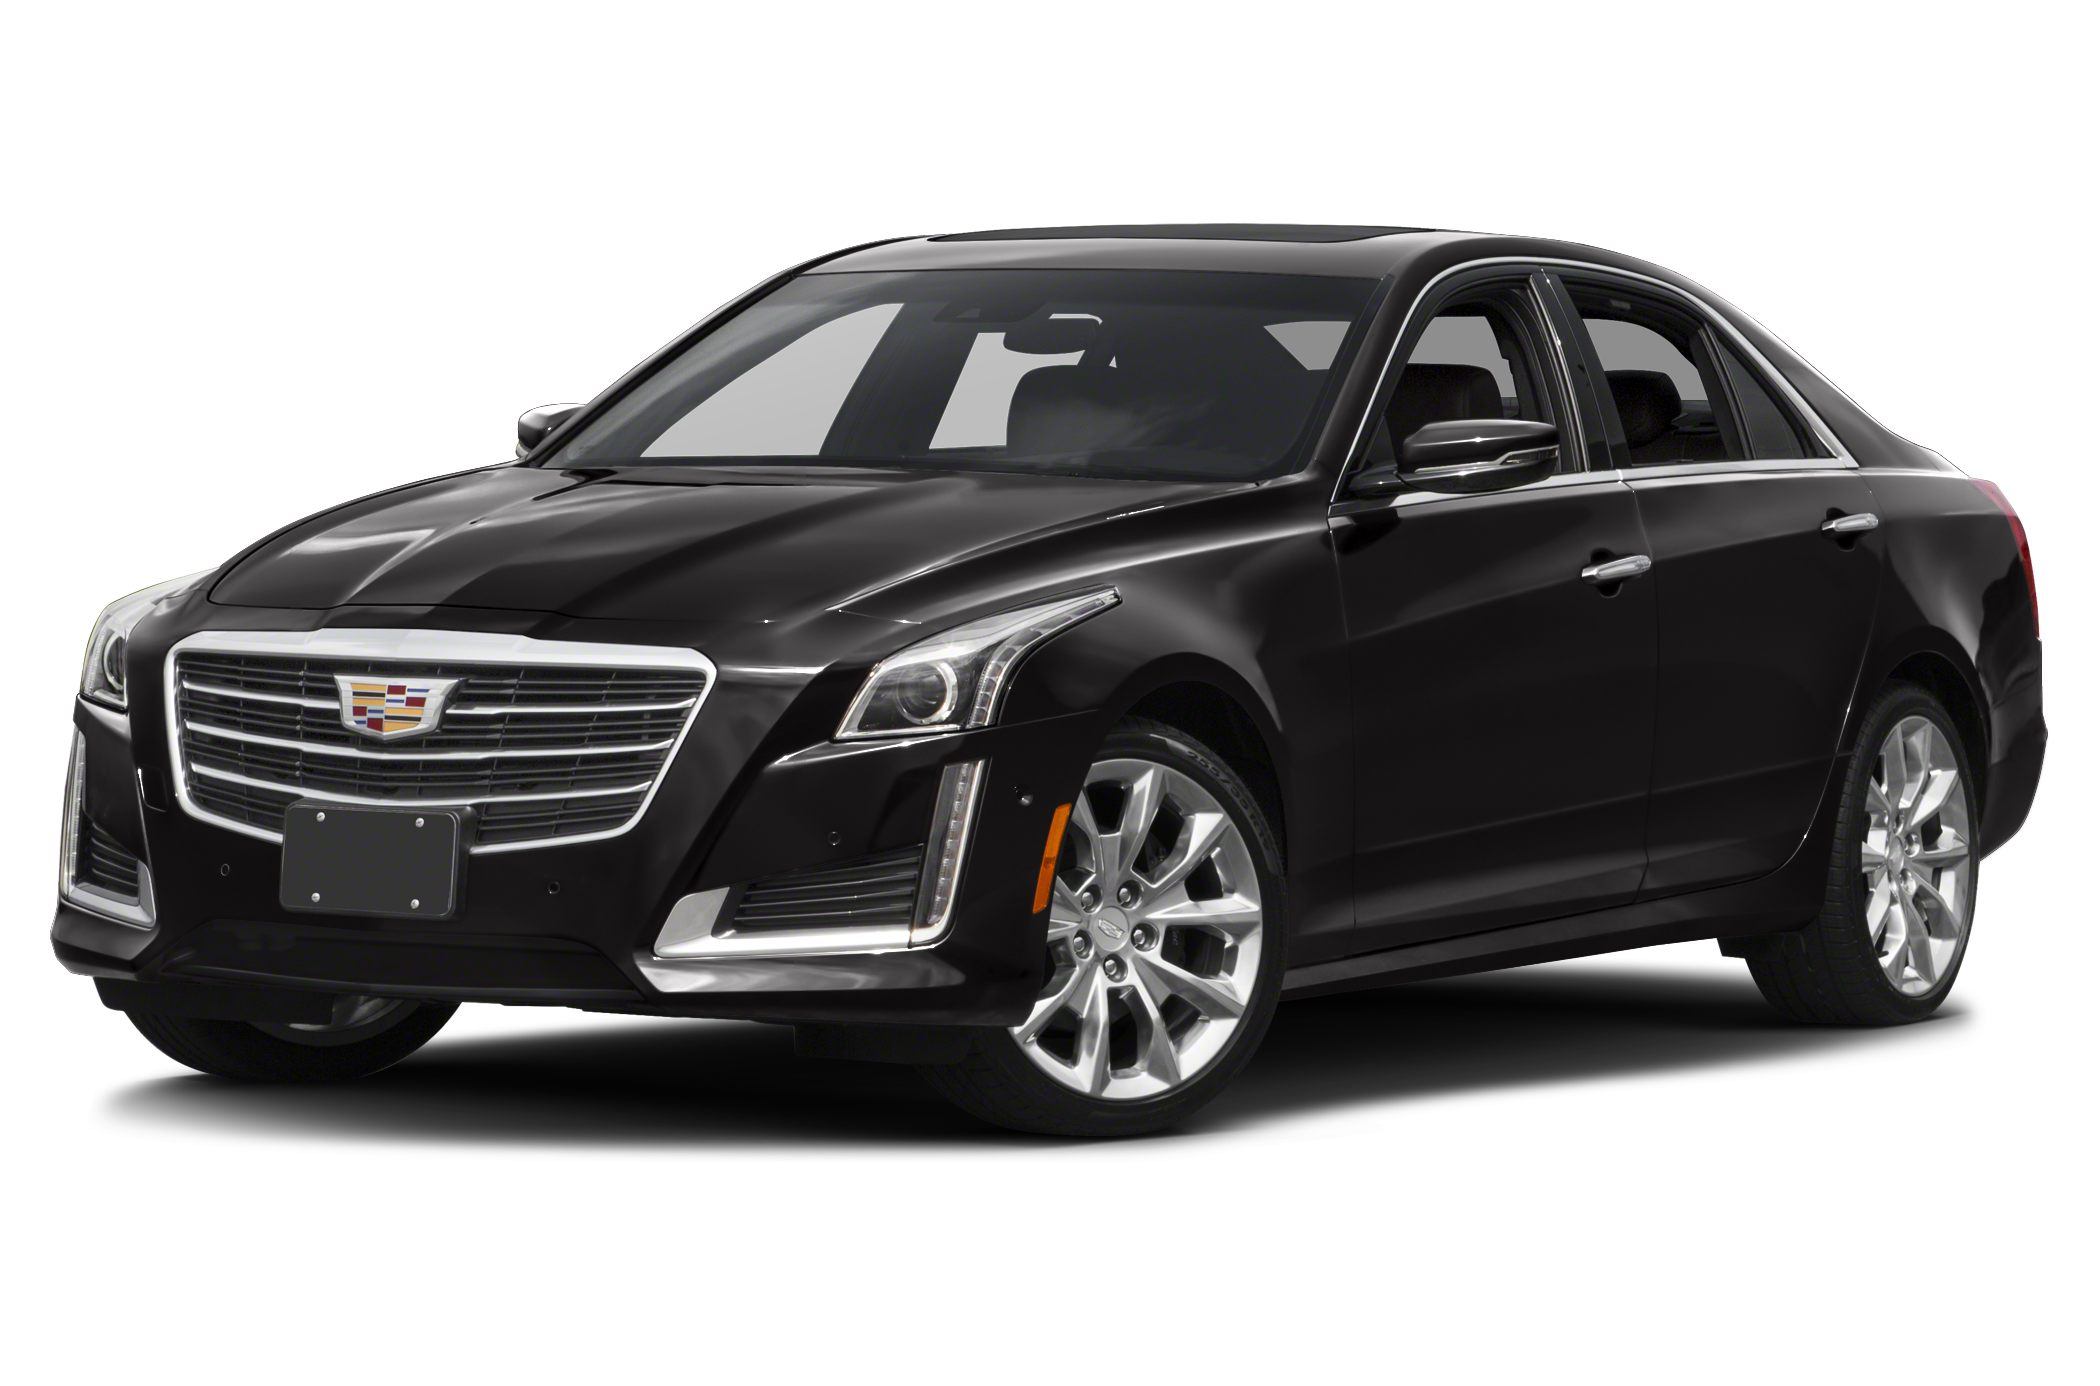 2015 Cadillac CTS Performance Price includes 2000 - Cadillac Alternative Purchase Allowance Ex